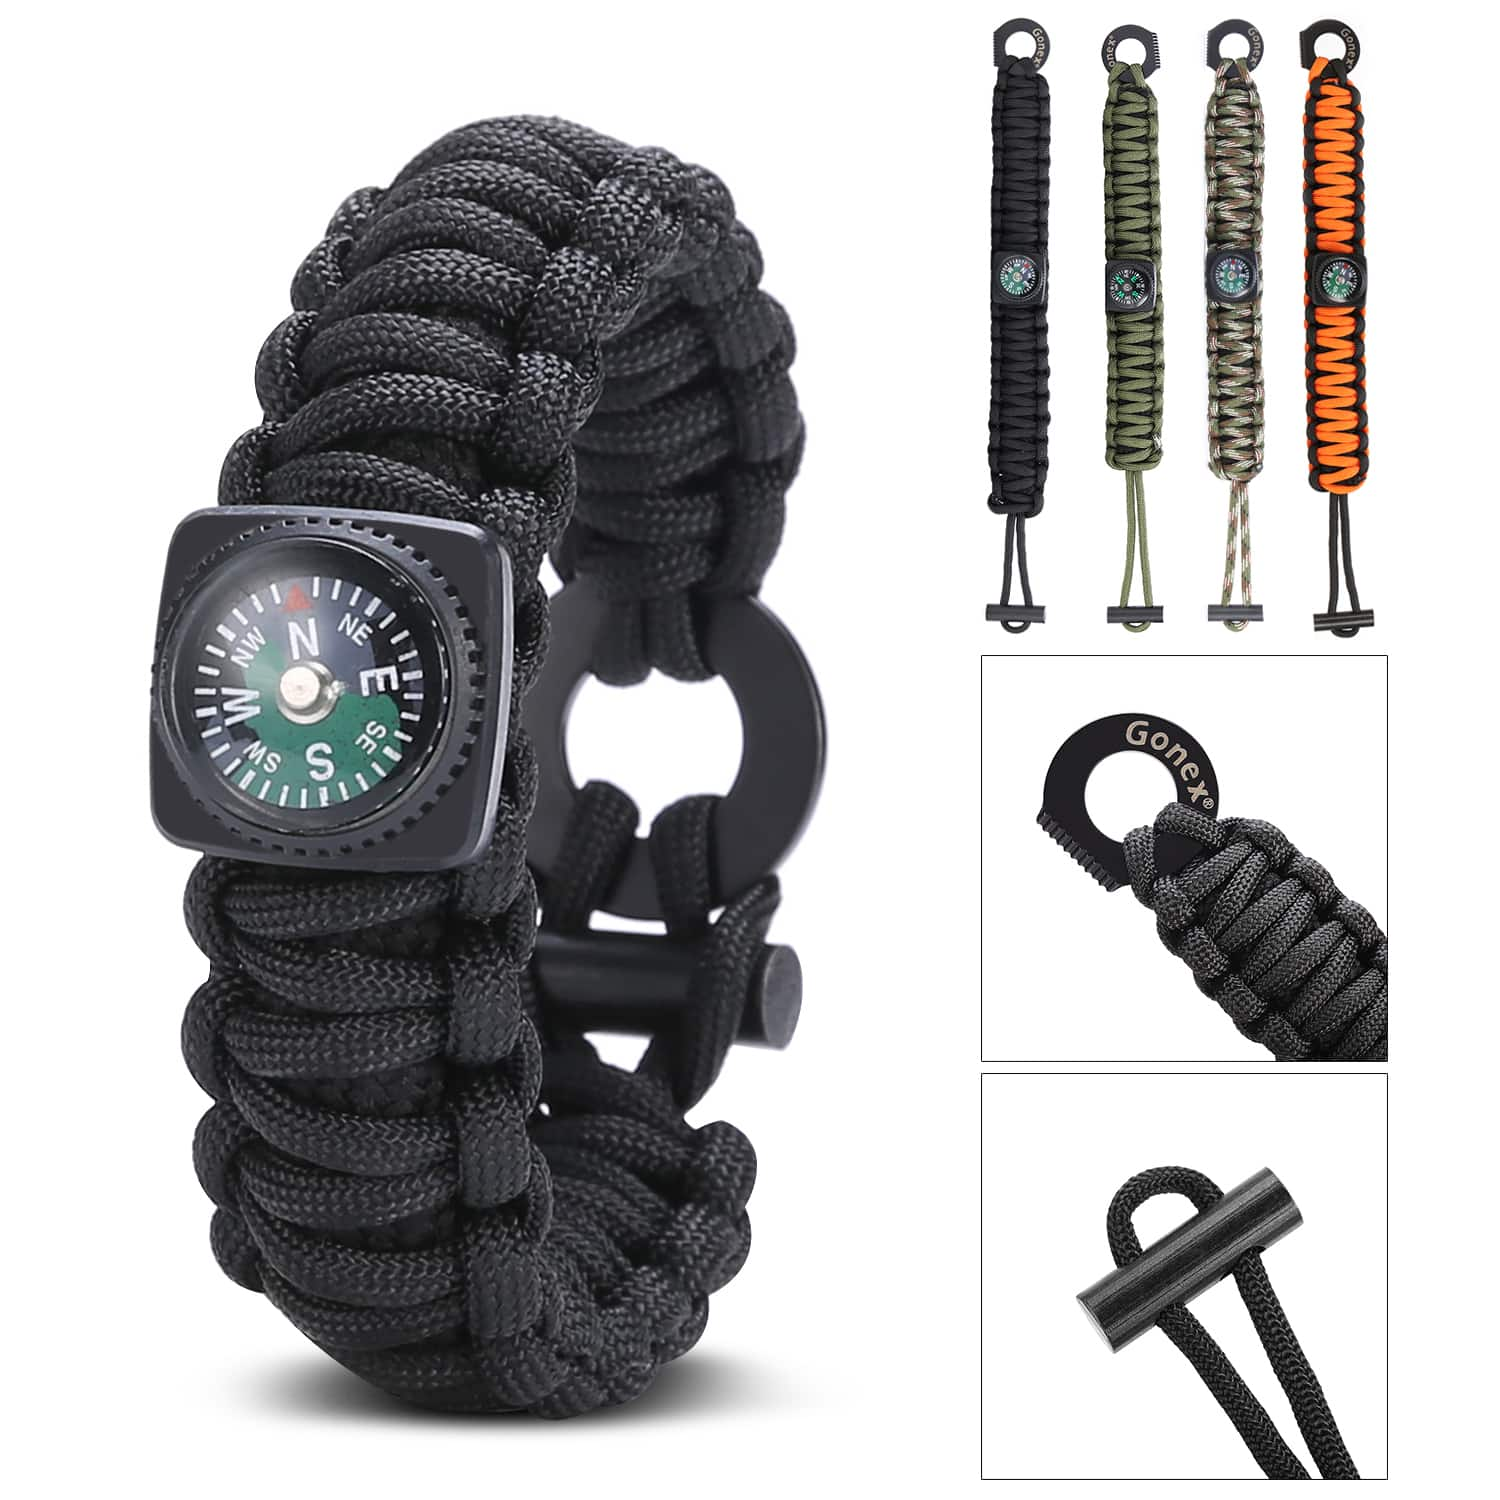 urlhasbeenblocked Paracord 550 Survival Bracelet with Compass, Eye Knife, Fire Starter, Fishing Tool $5.99 | FREE shipping